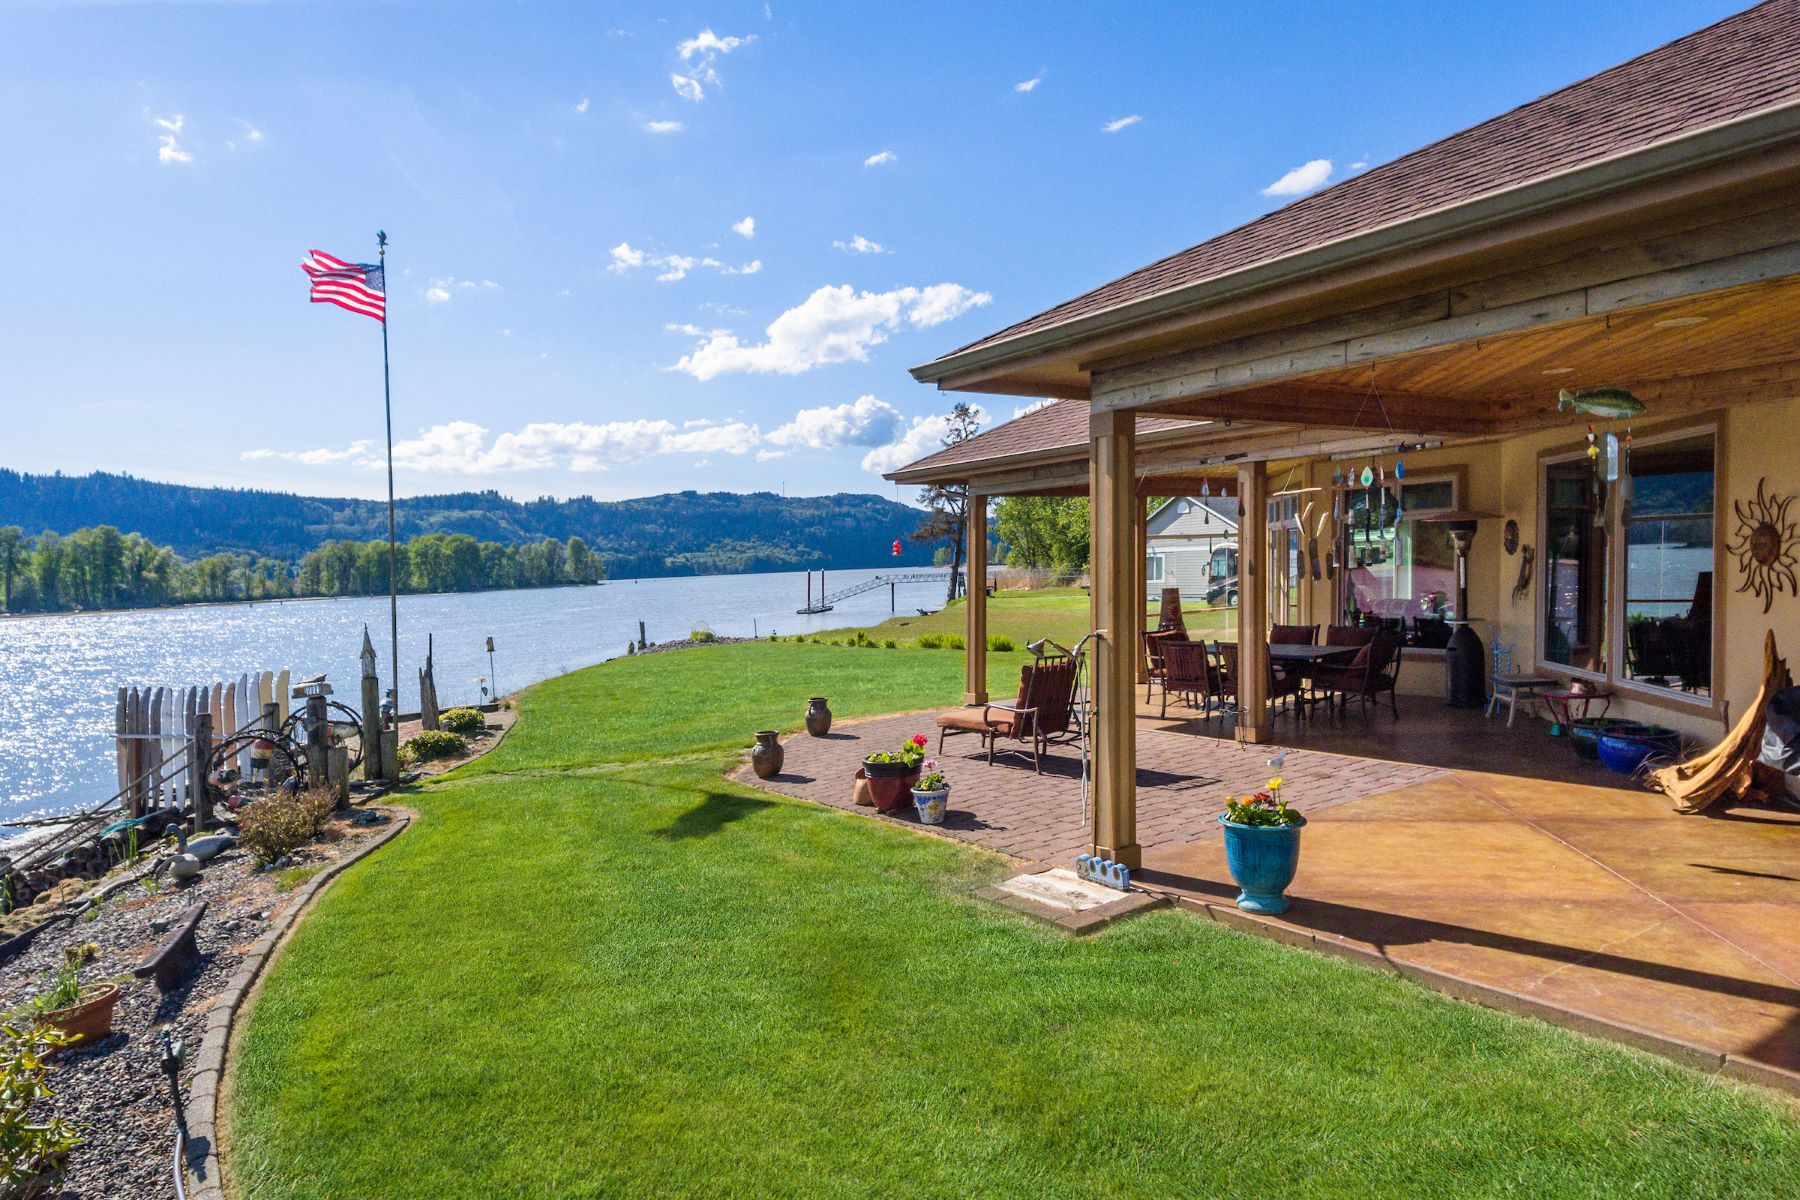 Single Family Homes for Sale at 217 W Sunny Sands , Cathlamet, WA 98612 217 W Sunny Sands Cathlamet, Washington 98612 United States